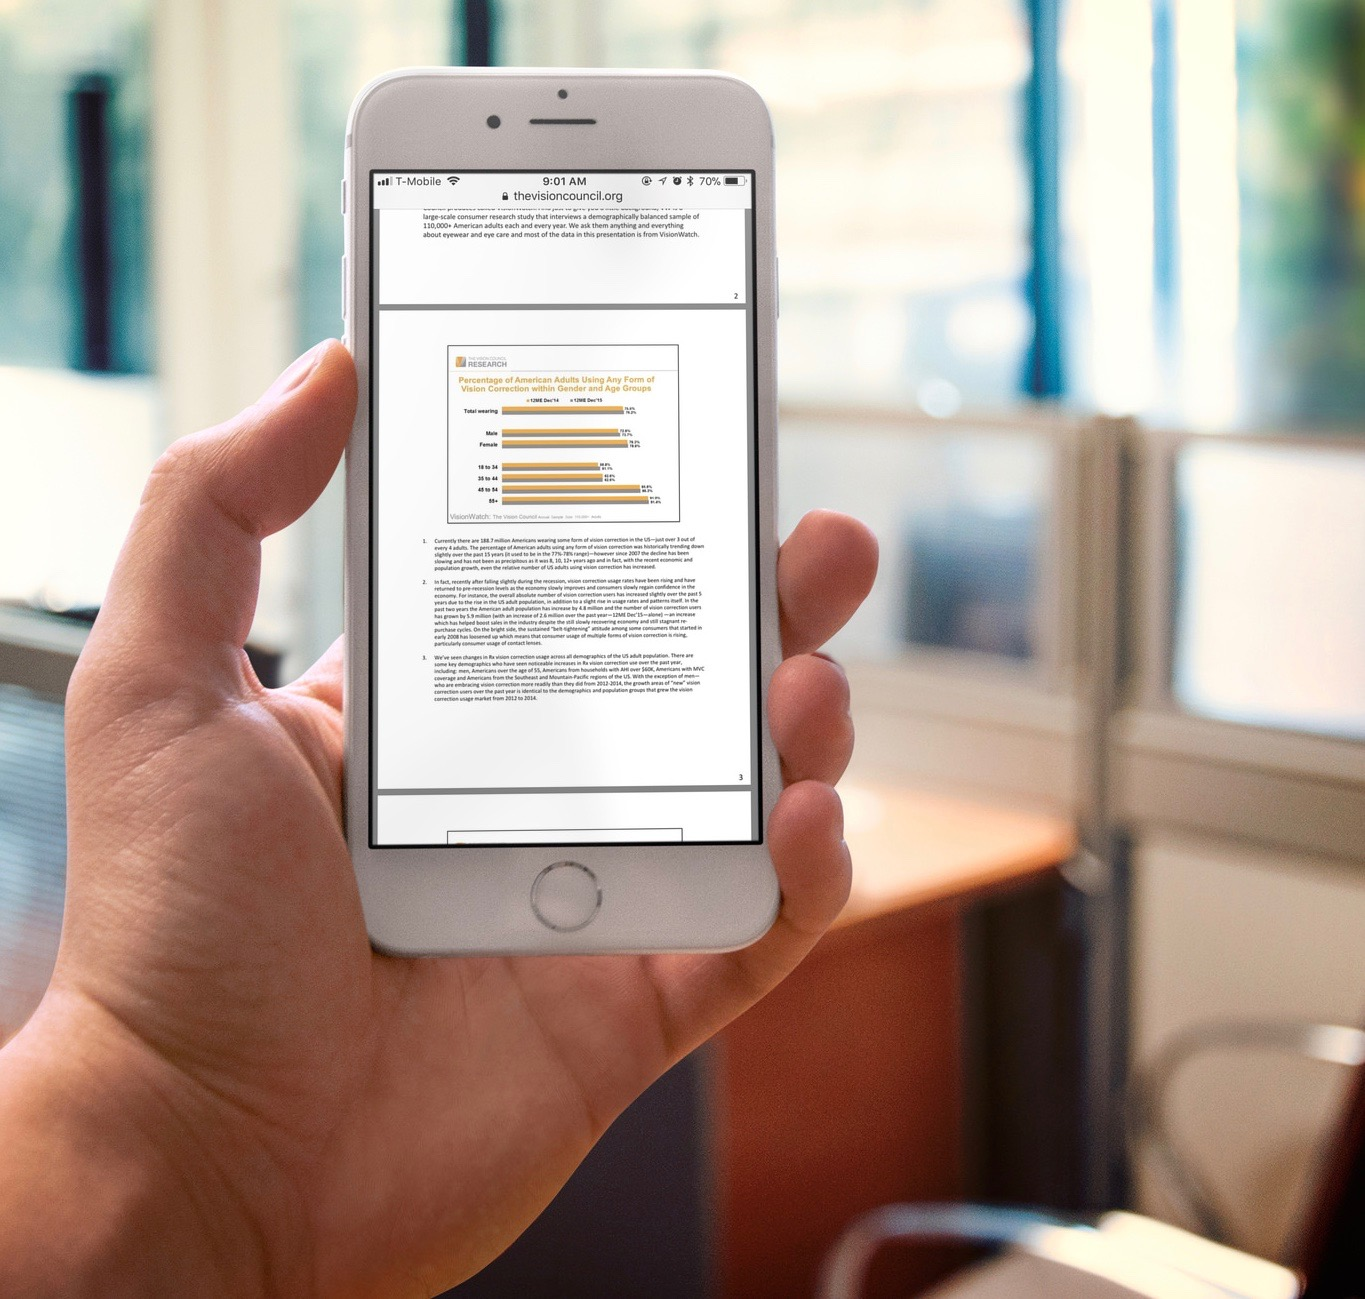 Here's how that PDF you published looks on a mobile device. -